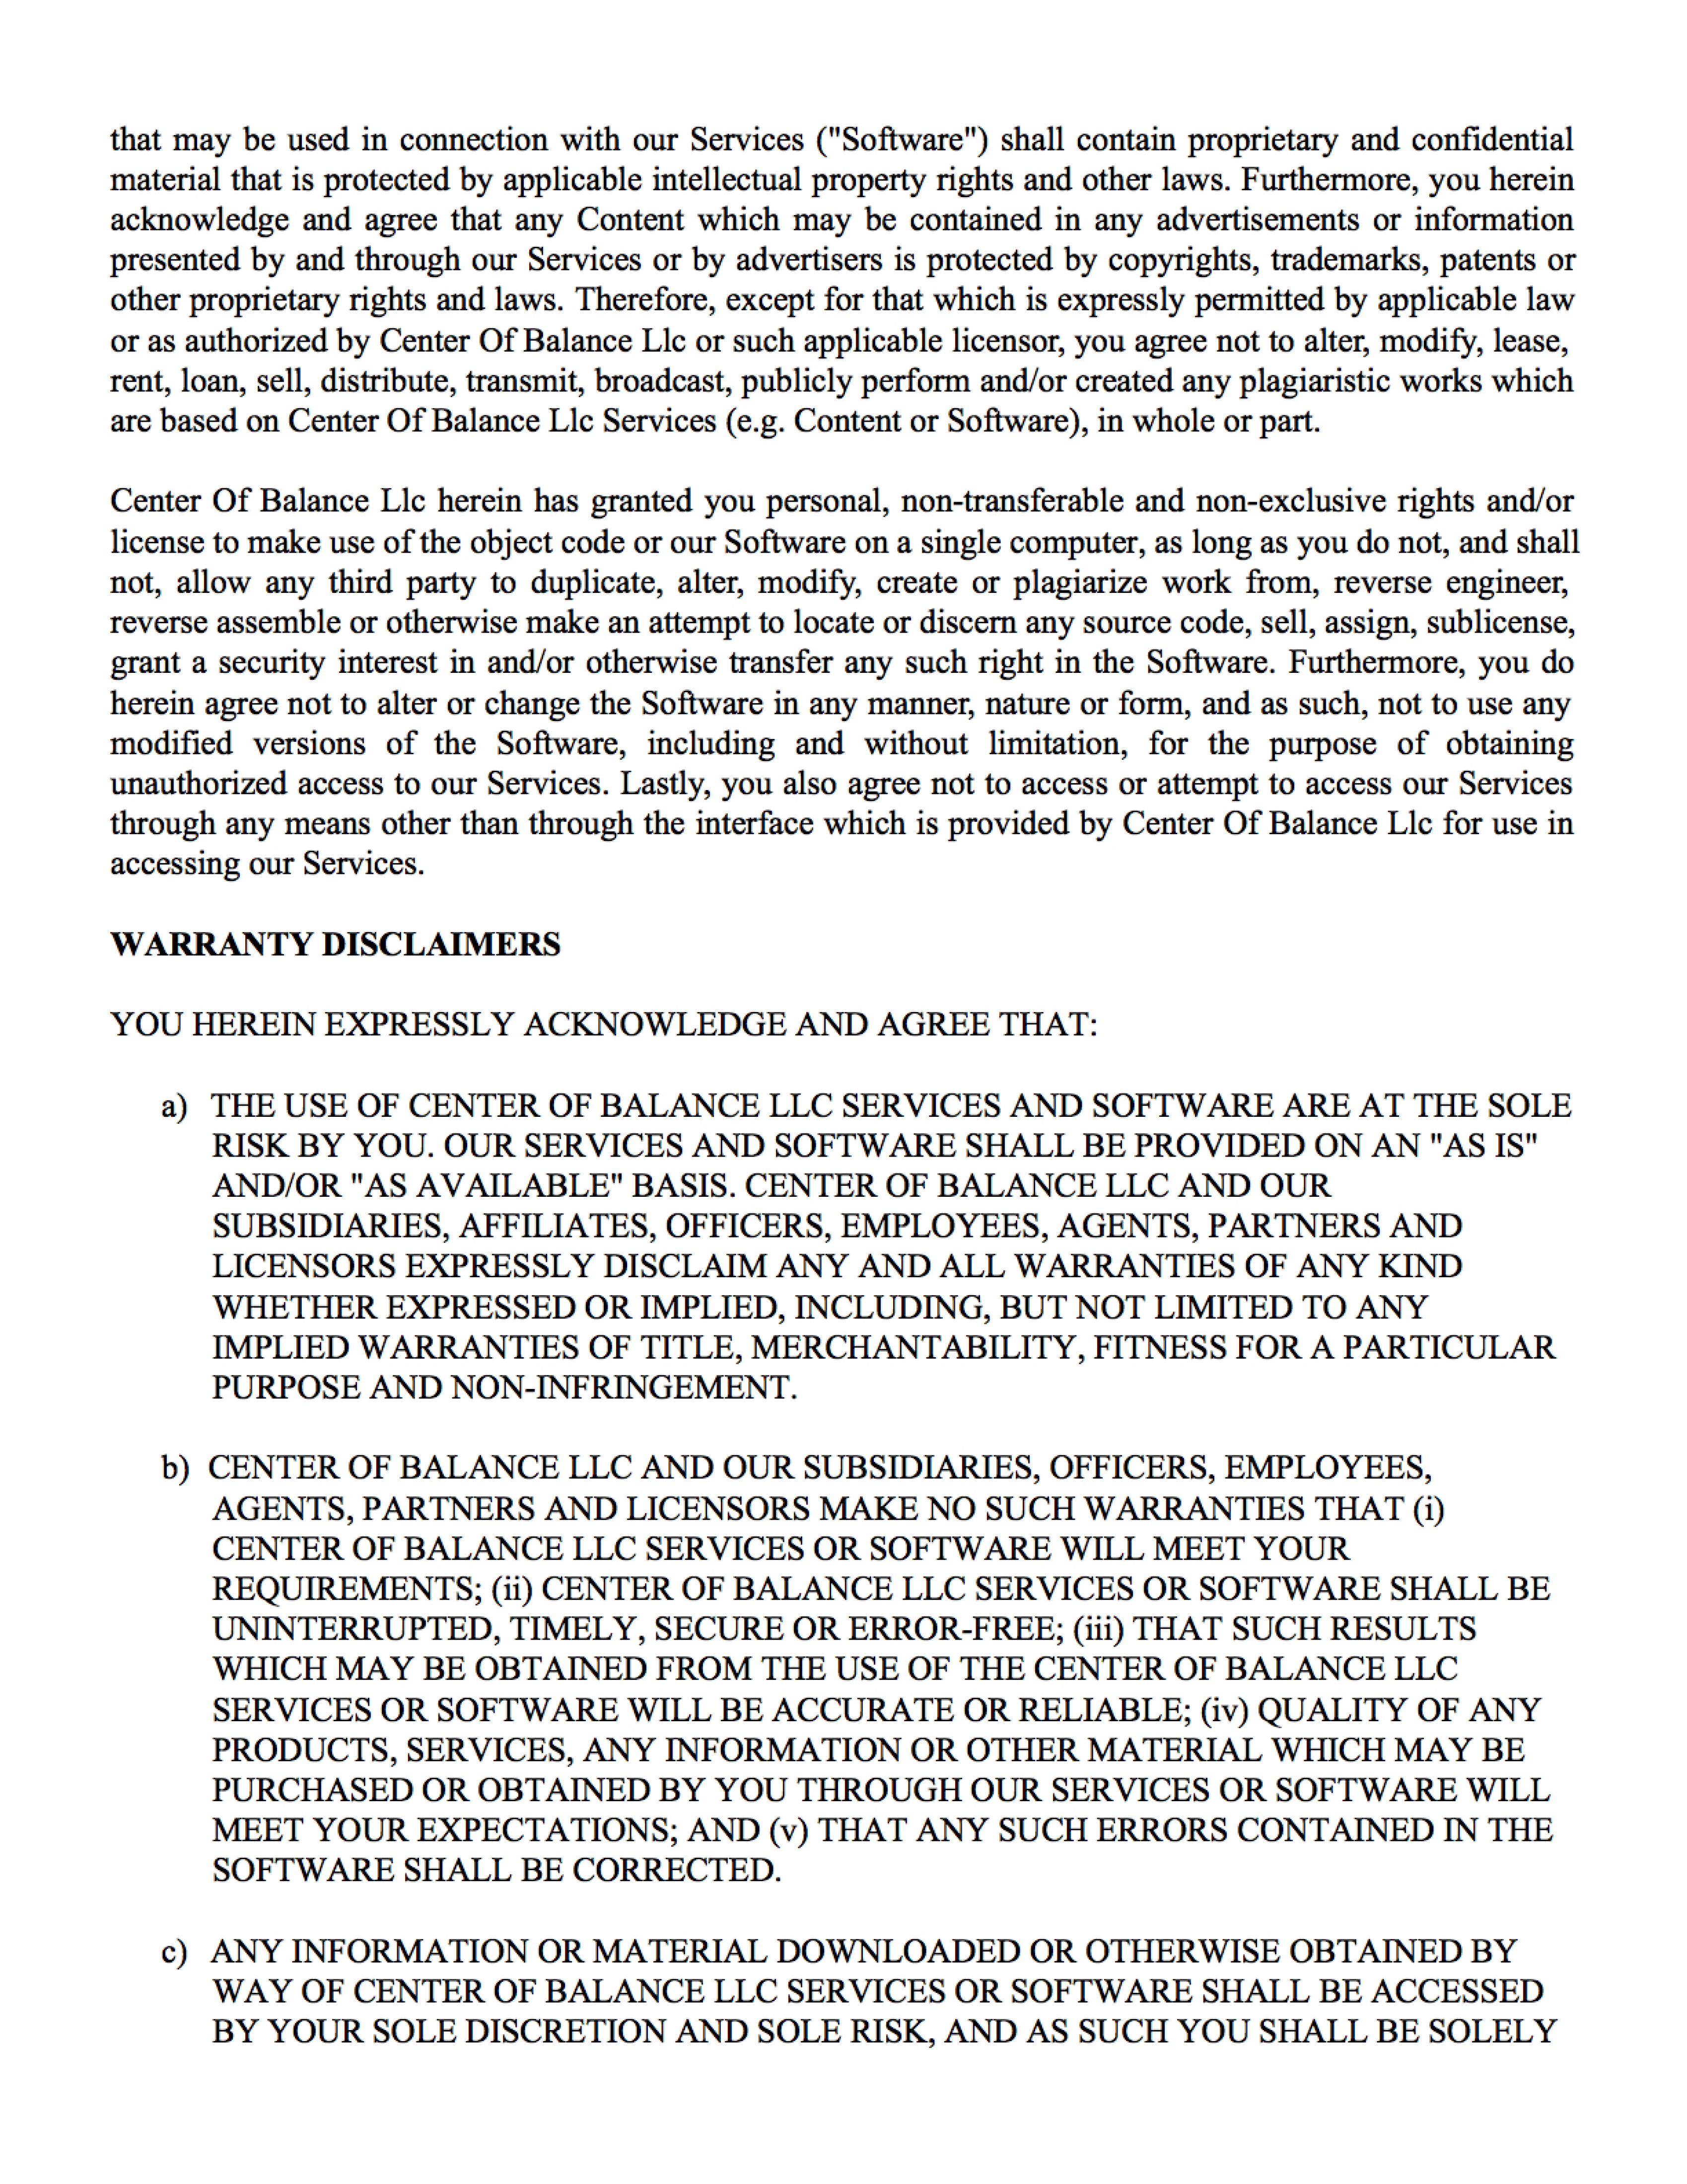 terms-and-conditions-b-page-09.png